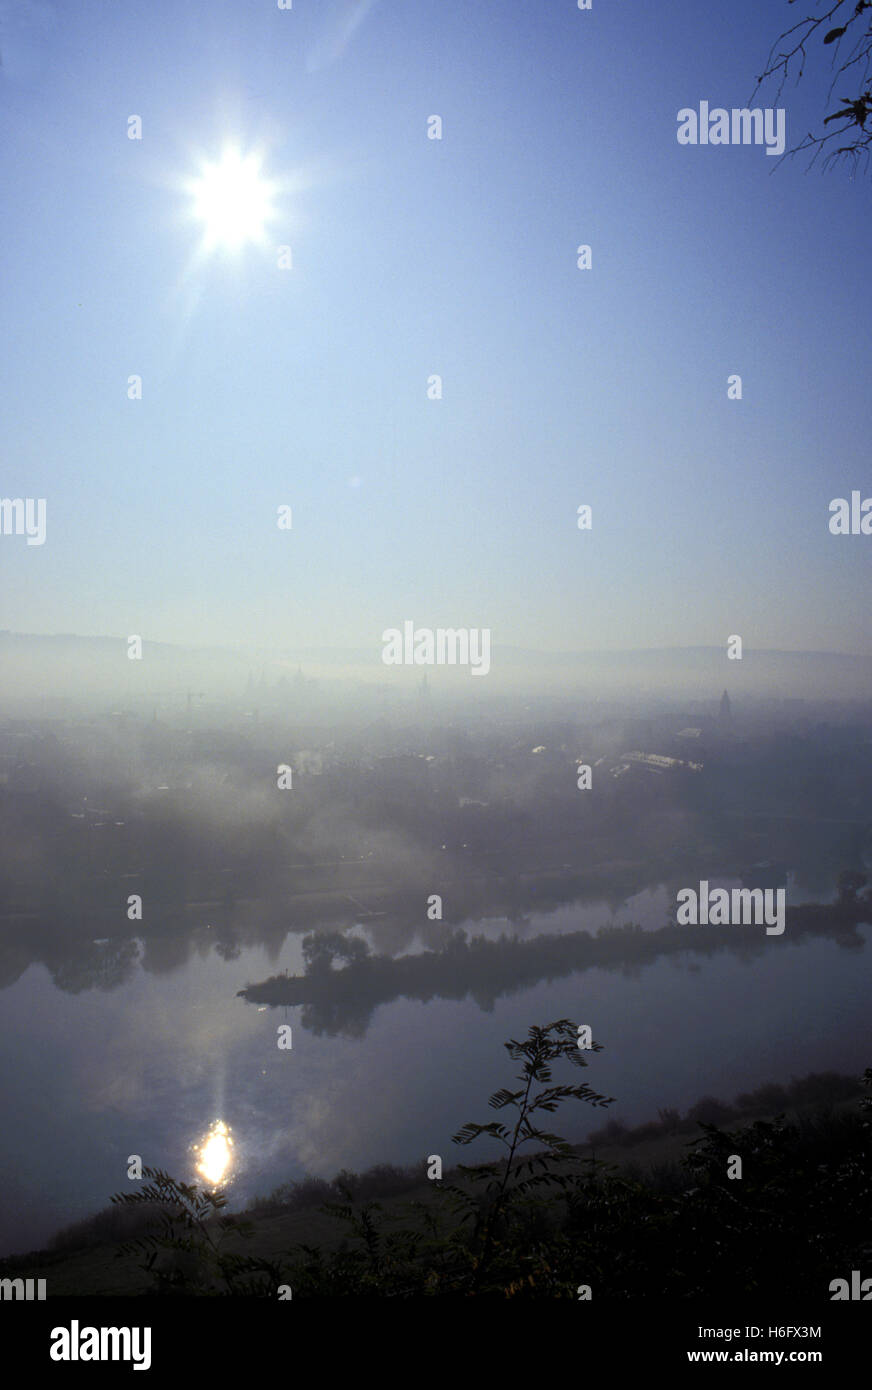 Germany, Trier, view from the Markus mountain to the city, early morning fog, river Moselle. - Stock Image